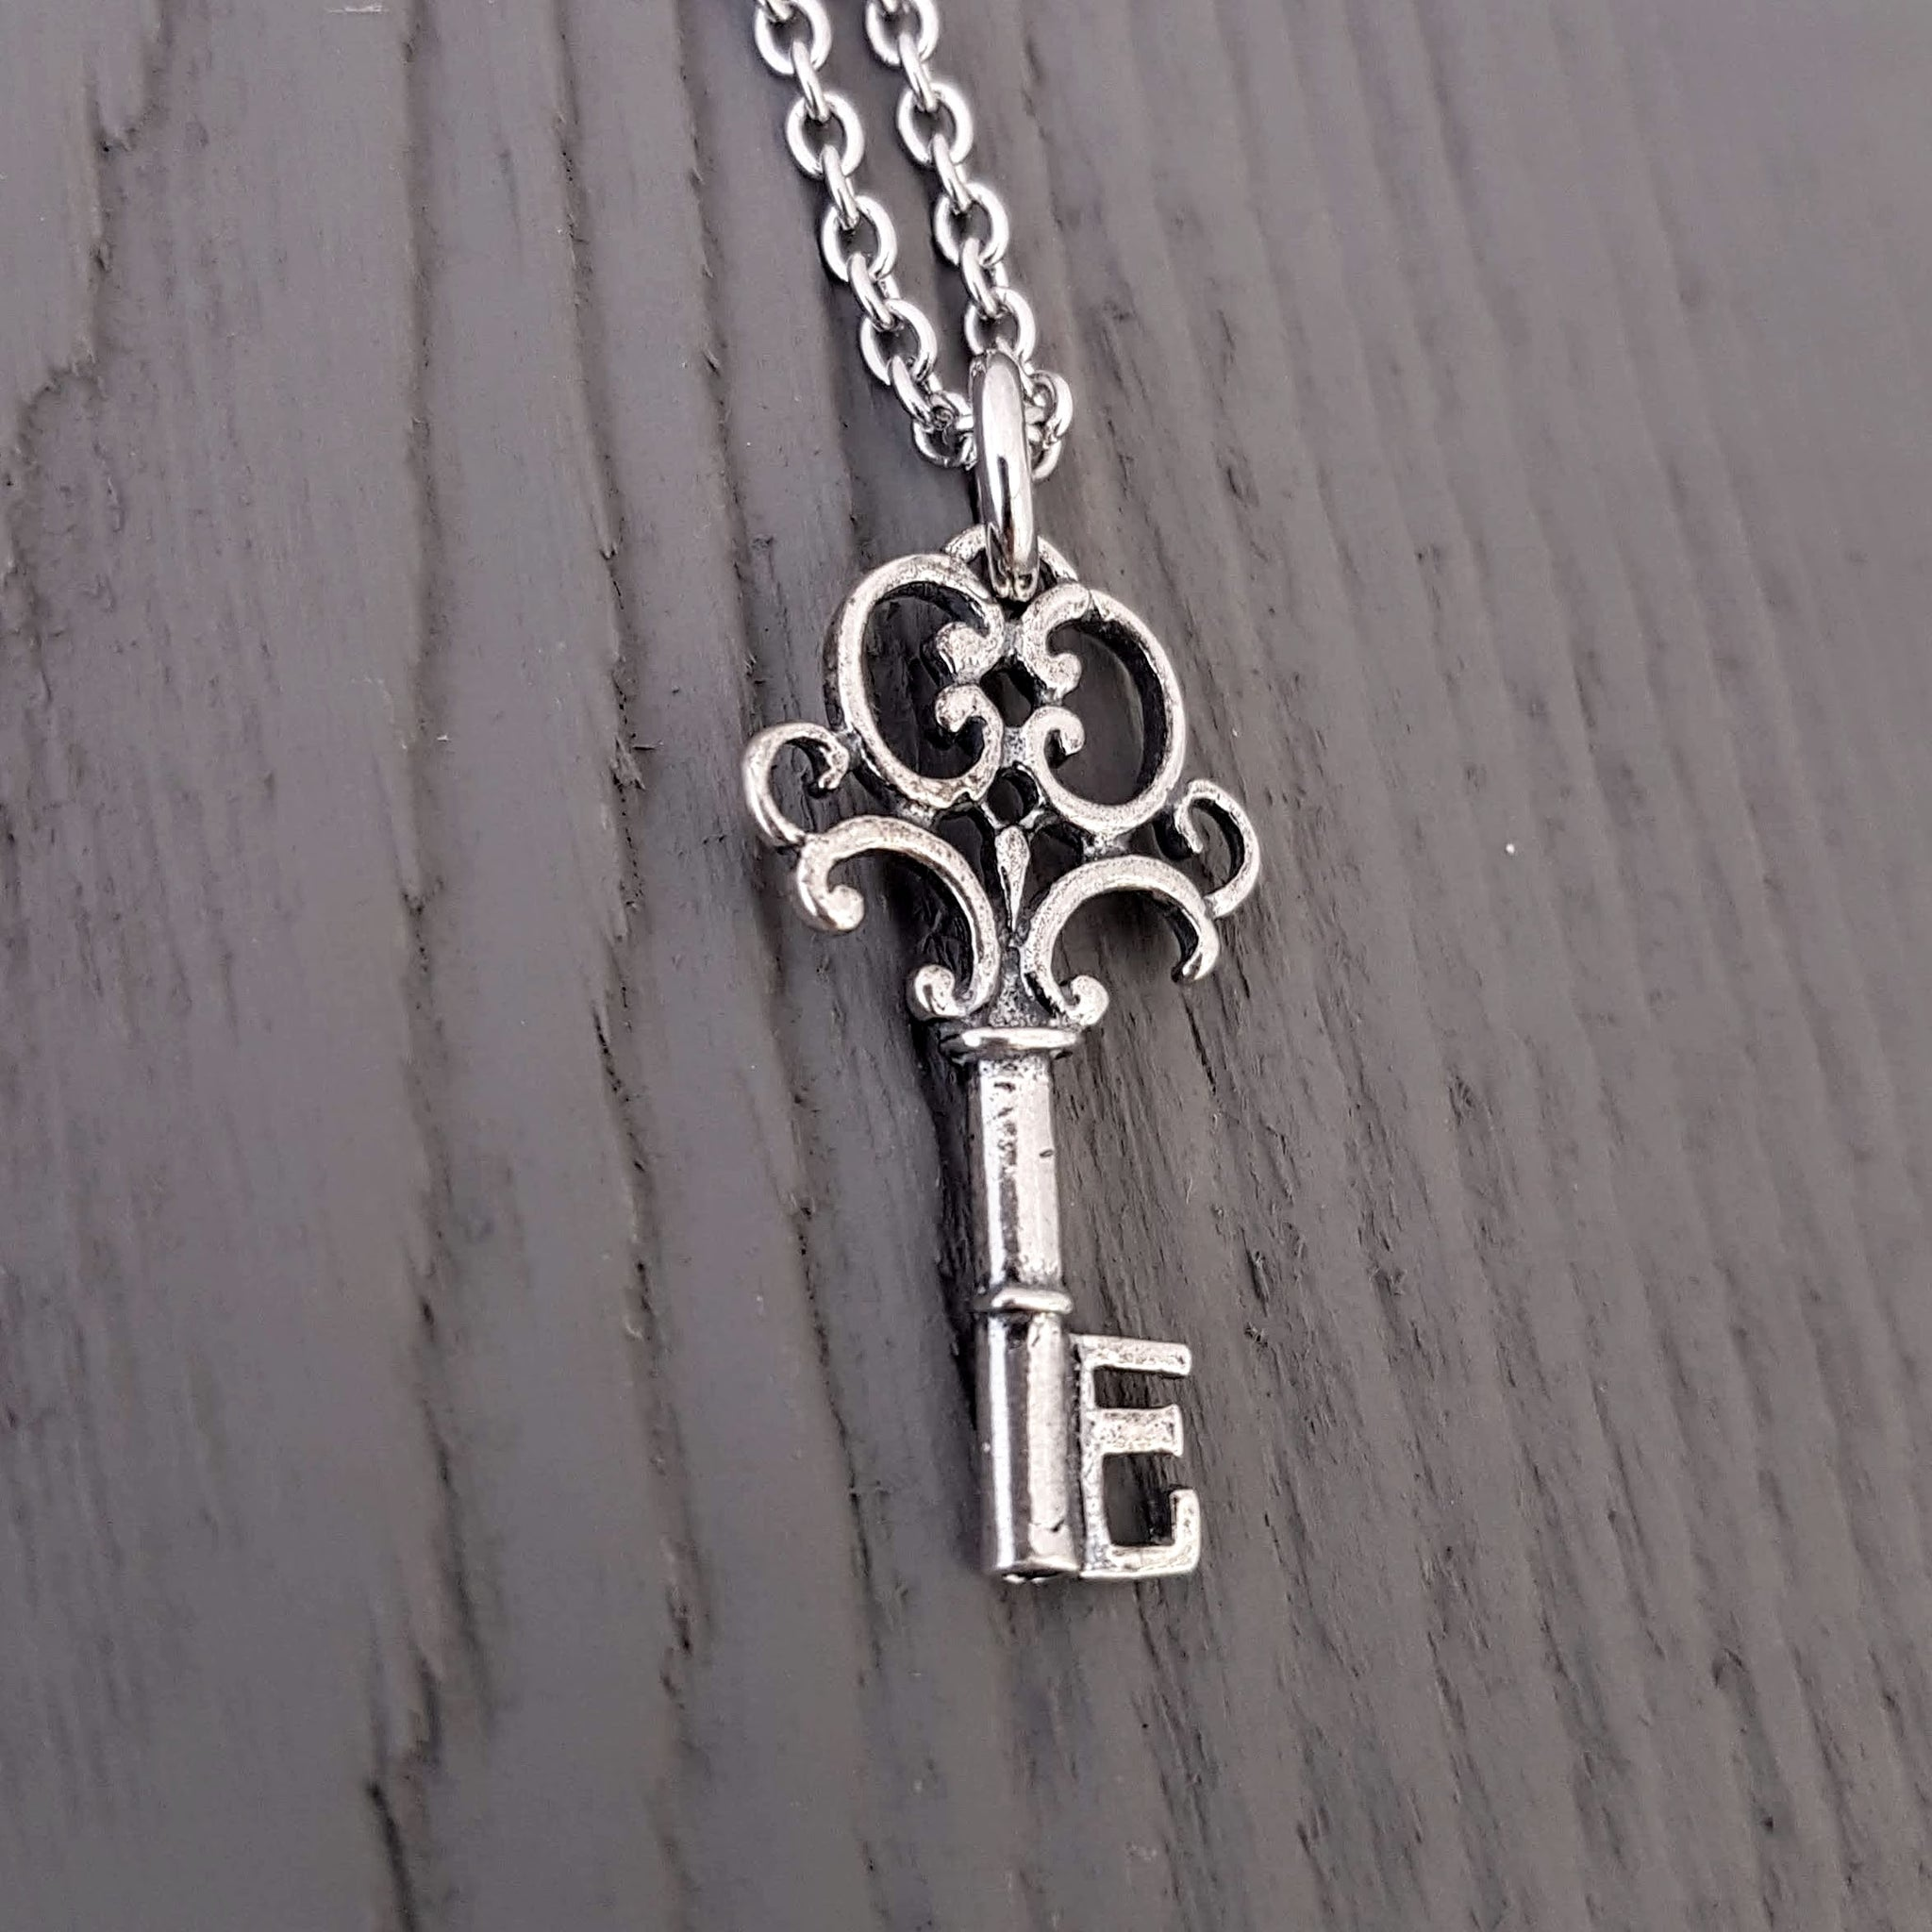 Tiny Skeleton Key Necklace - Gwen Delicious Jewelry Designs